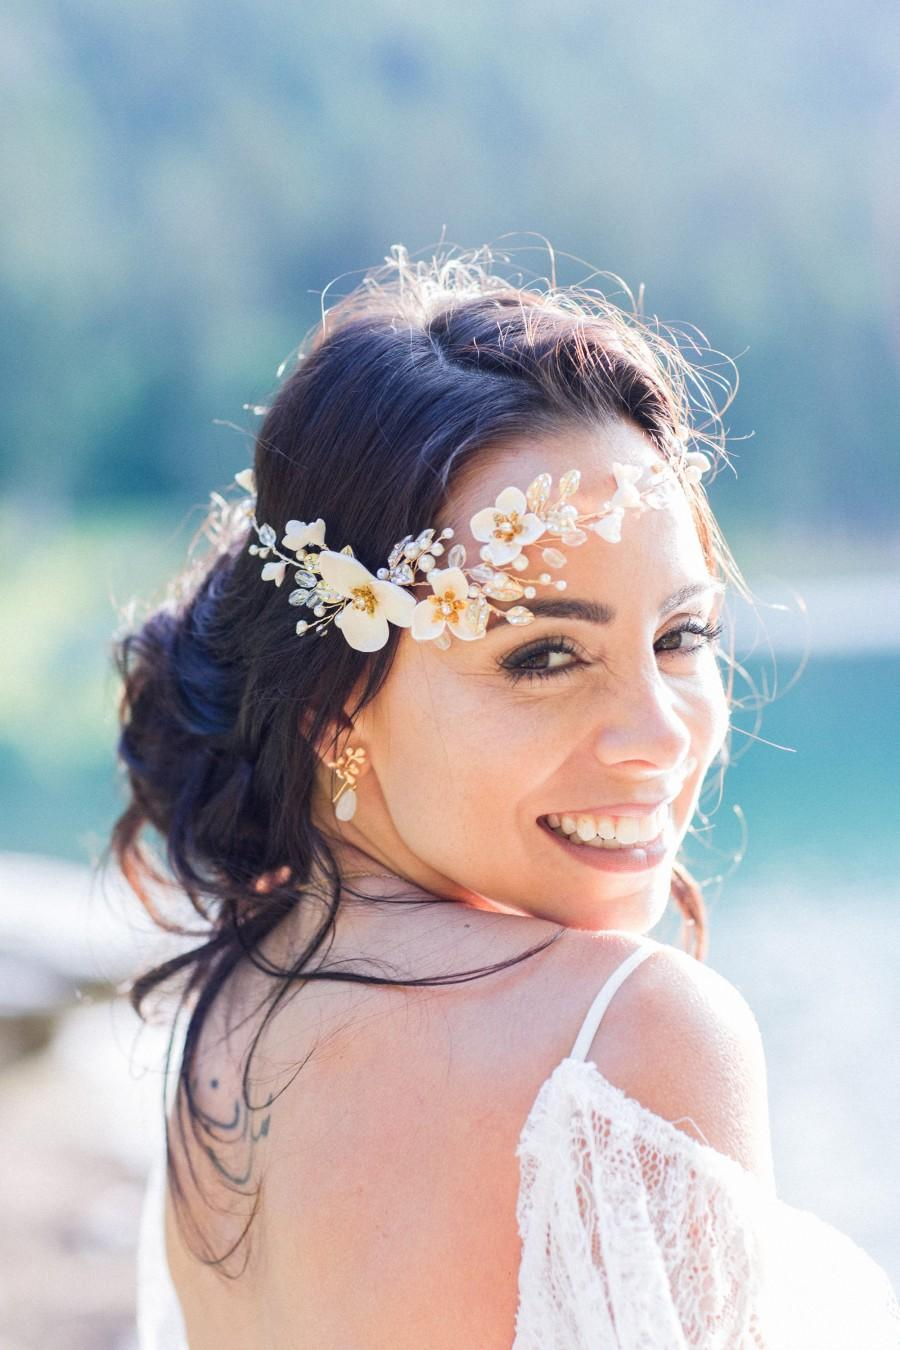 Свадьба - Bridal Hair Piece, Flower Bridal Headband, Wedding Hair Vine, Bridal Tiara, Wedding Hair Wreath, Wedding Headpiece, Flower Tiara Gold-REGINA